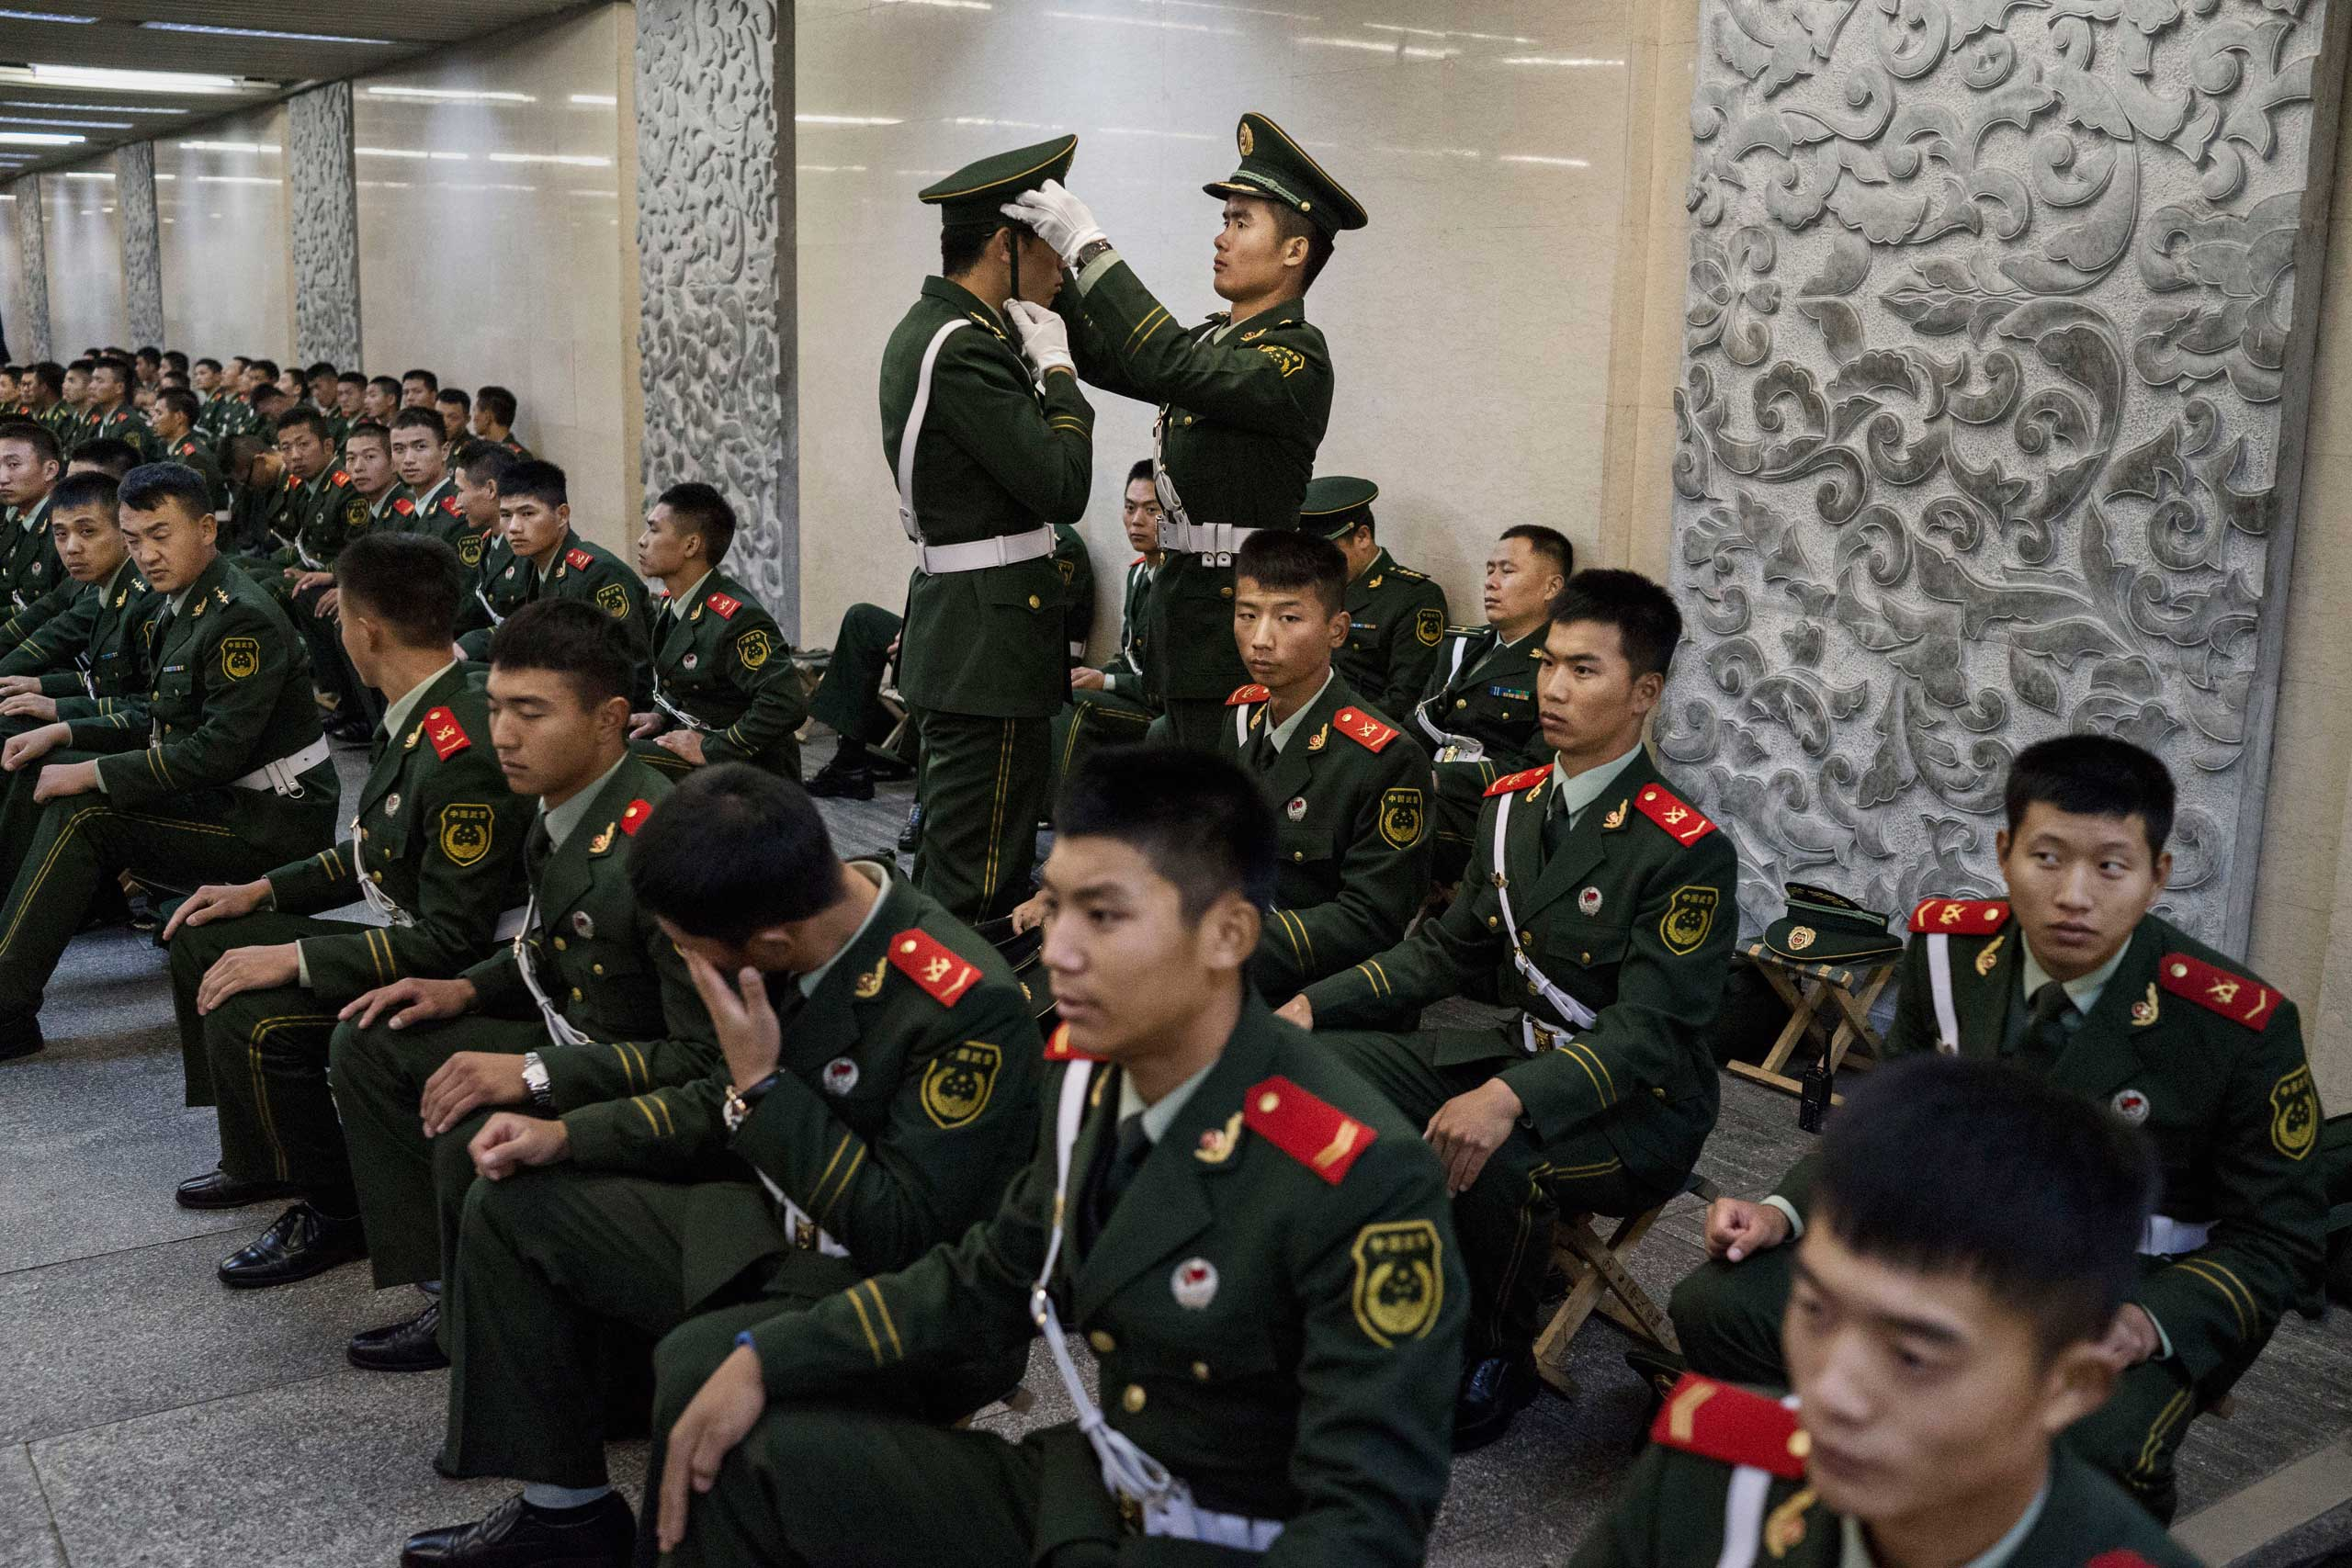 A paramilitary police officer adjusts another's cap as they and others wait in an underground tunnel before securing the official flag raising ceremony at Tiananmen Square to mark the 66th National Day in Beijing,  early on Oct. 1, 2015.